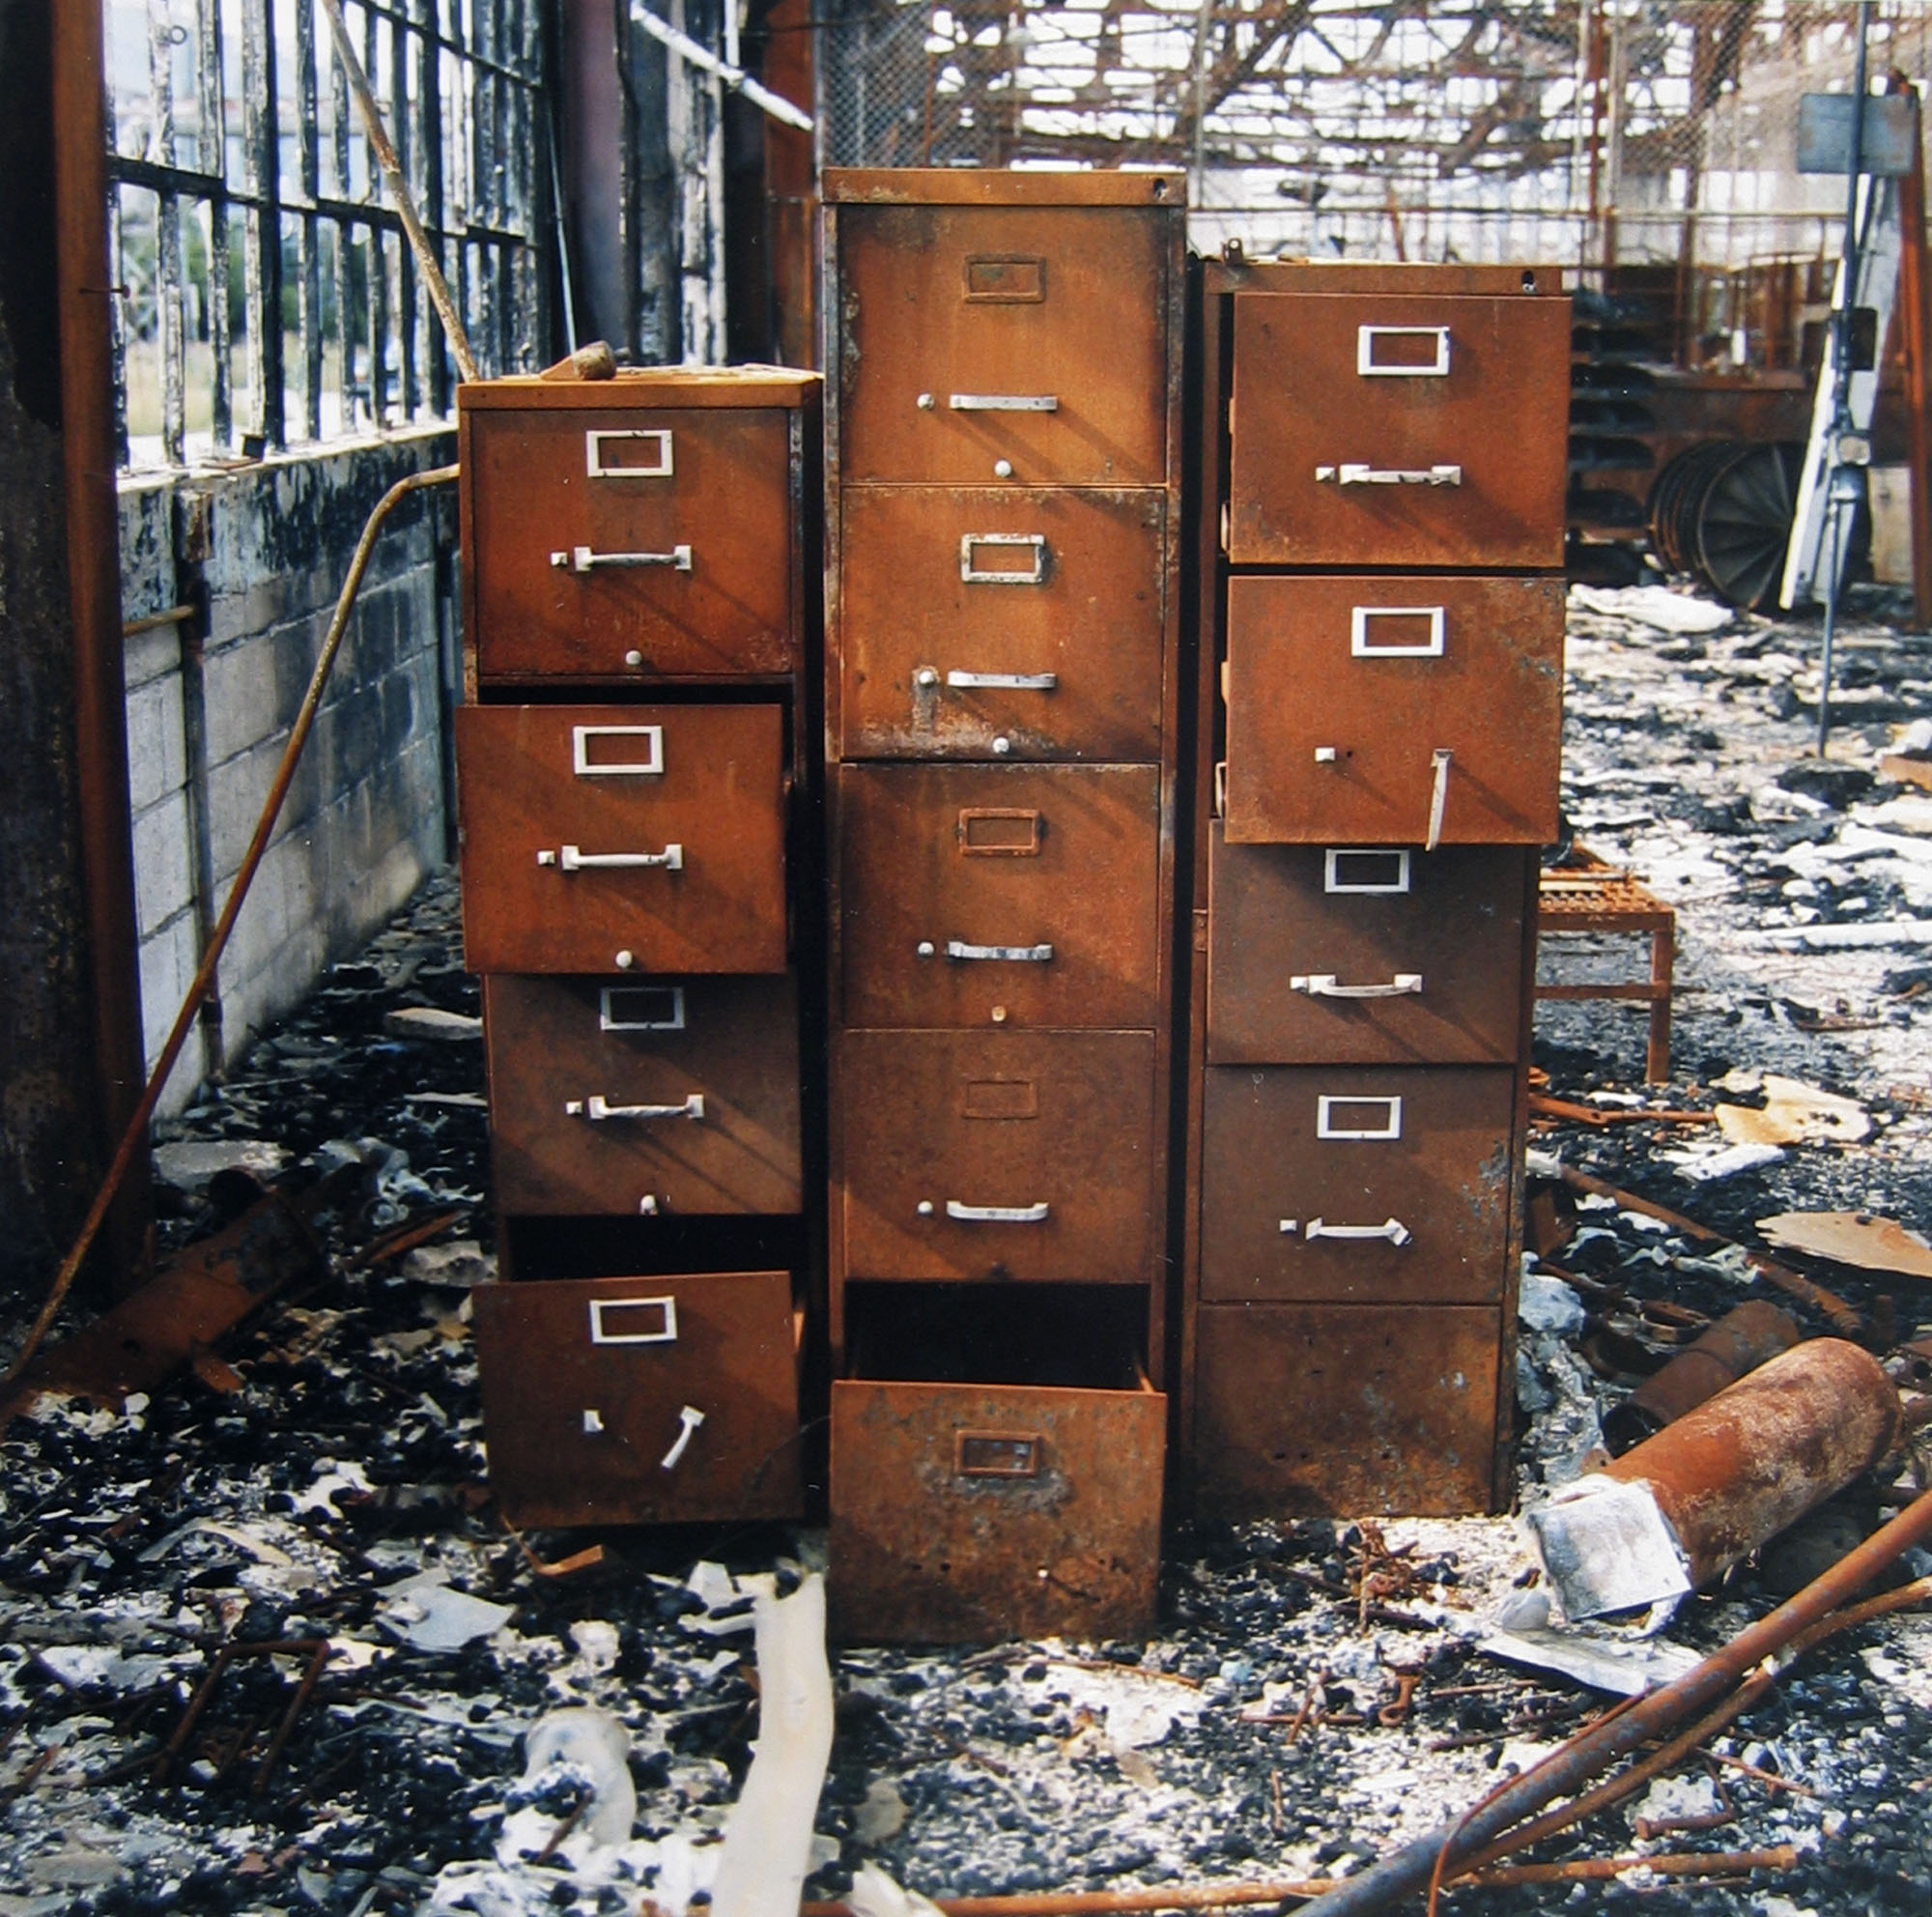 Abandoned main office building, with file cabinet, destroyed in December 1995 by fire, August 1, 1996